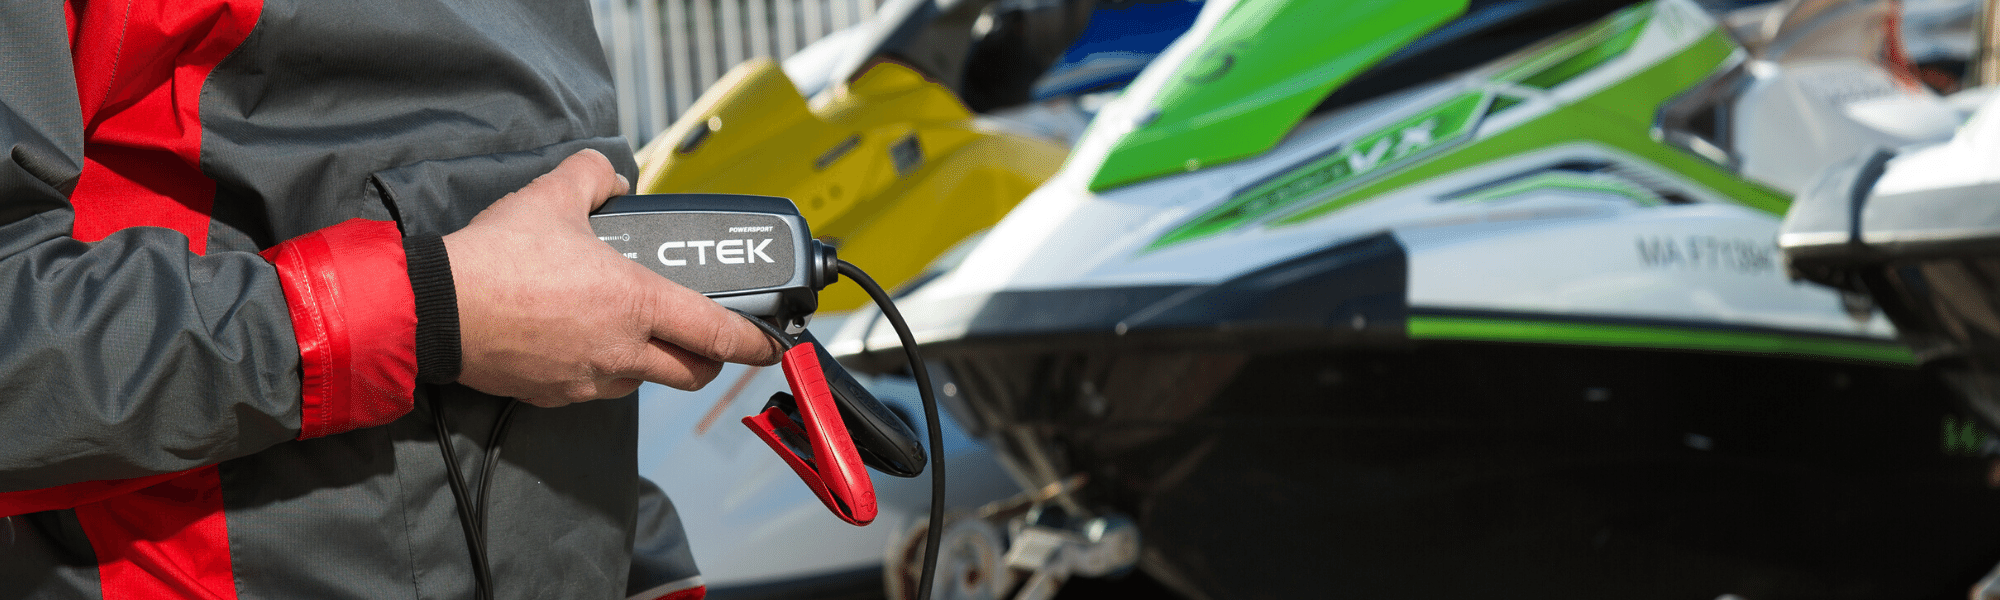 CTEK North America | Maximizing Battery Performance